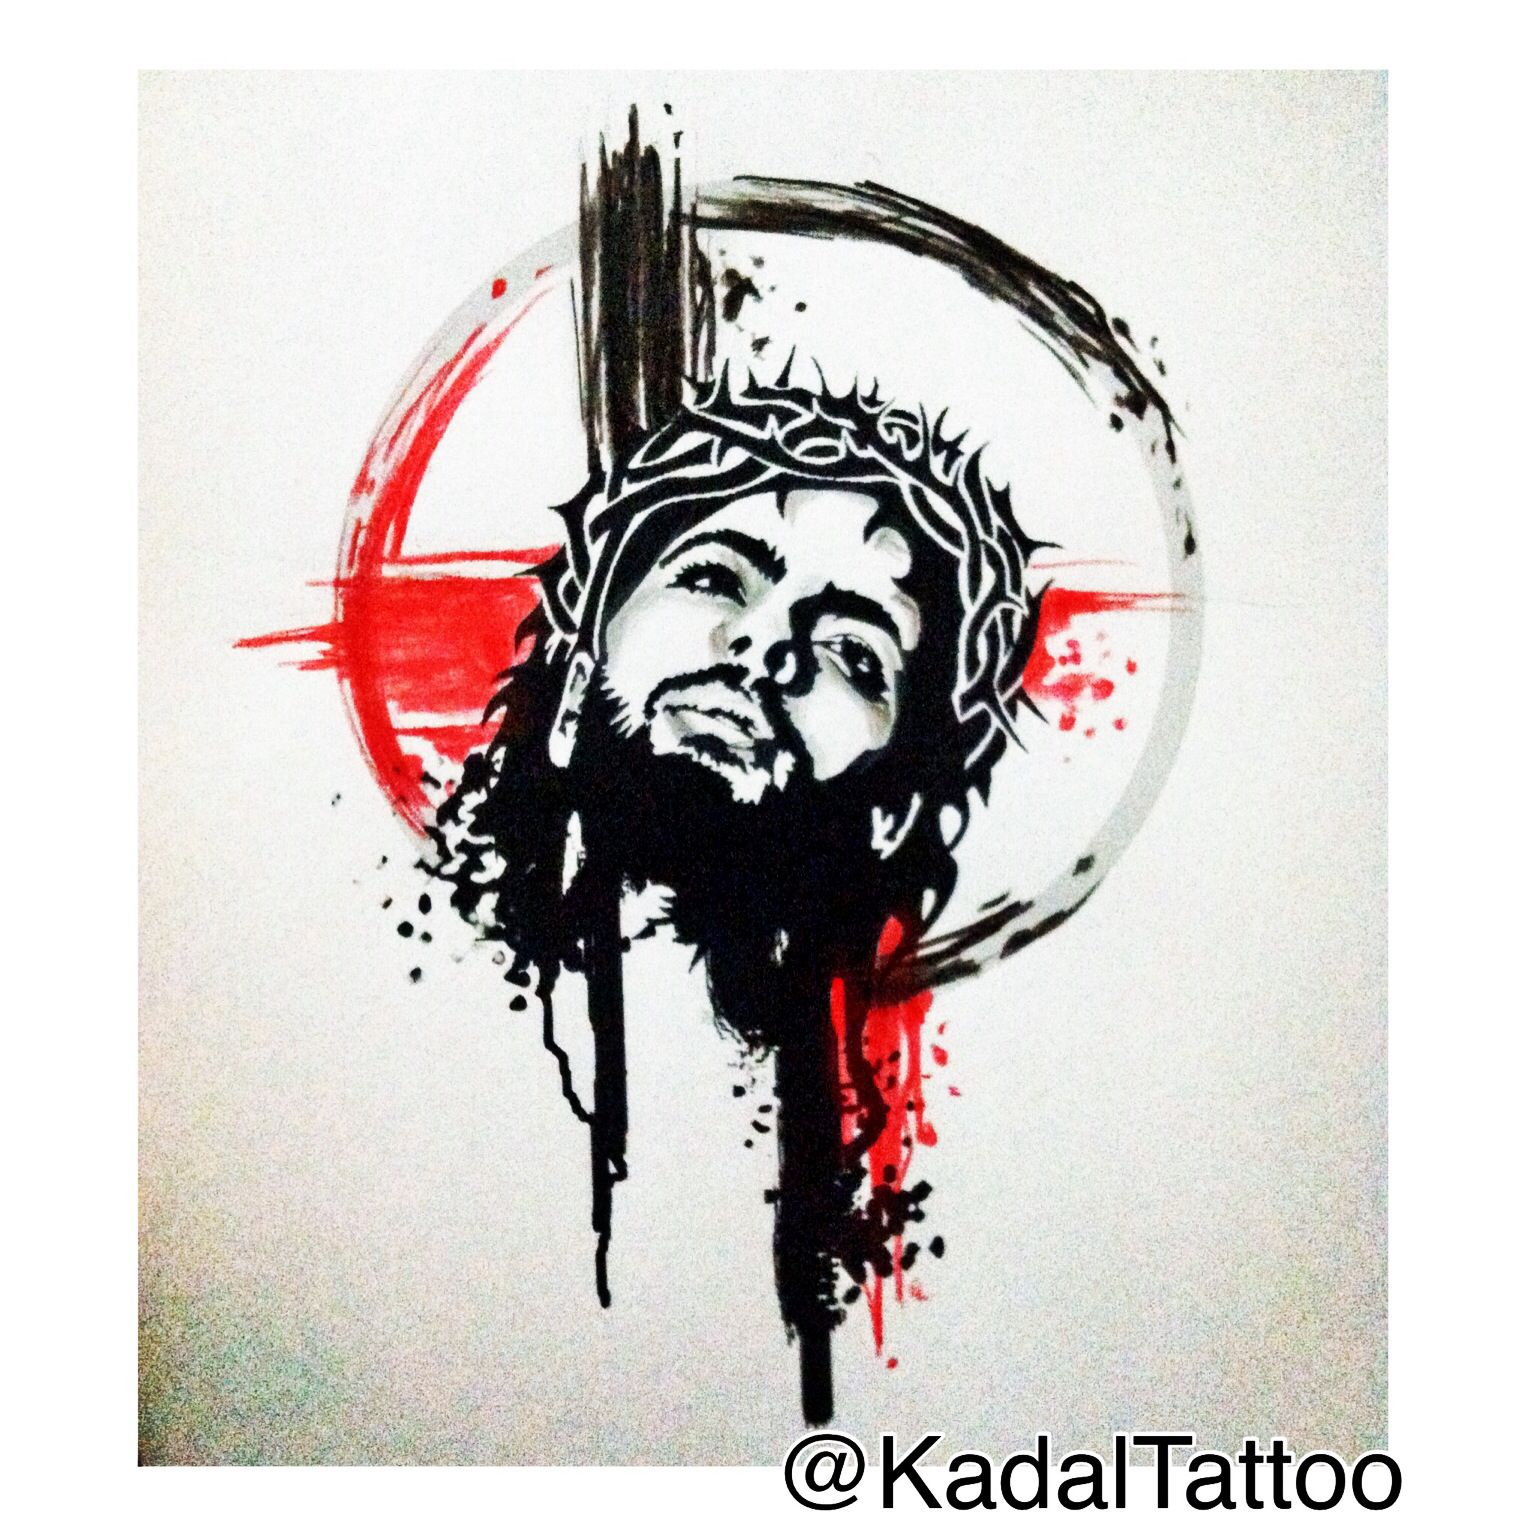 jesus in trash polka design enjoy kadaltattoo a jesus tattoo concept pinterest trash. Black Bedroom Furniture Sets. Home Design Ideas